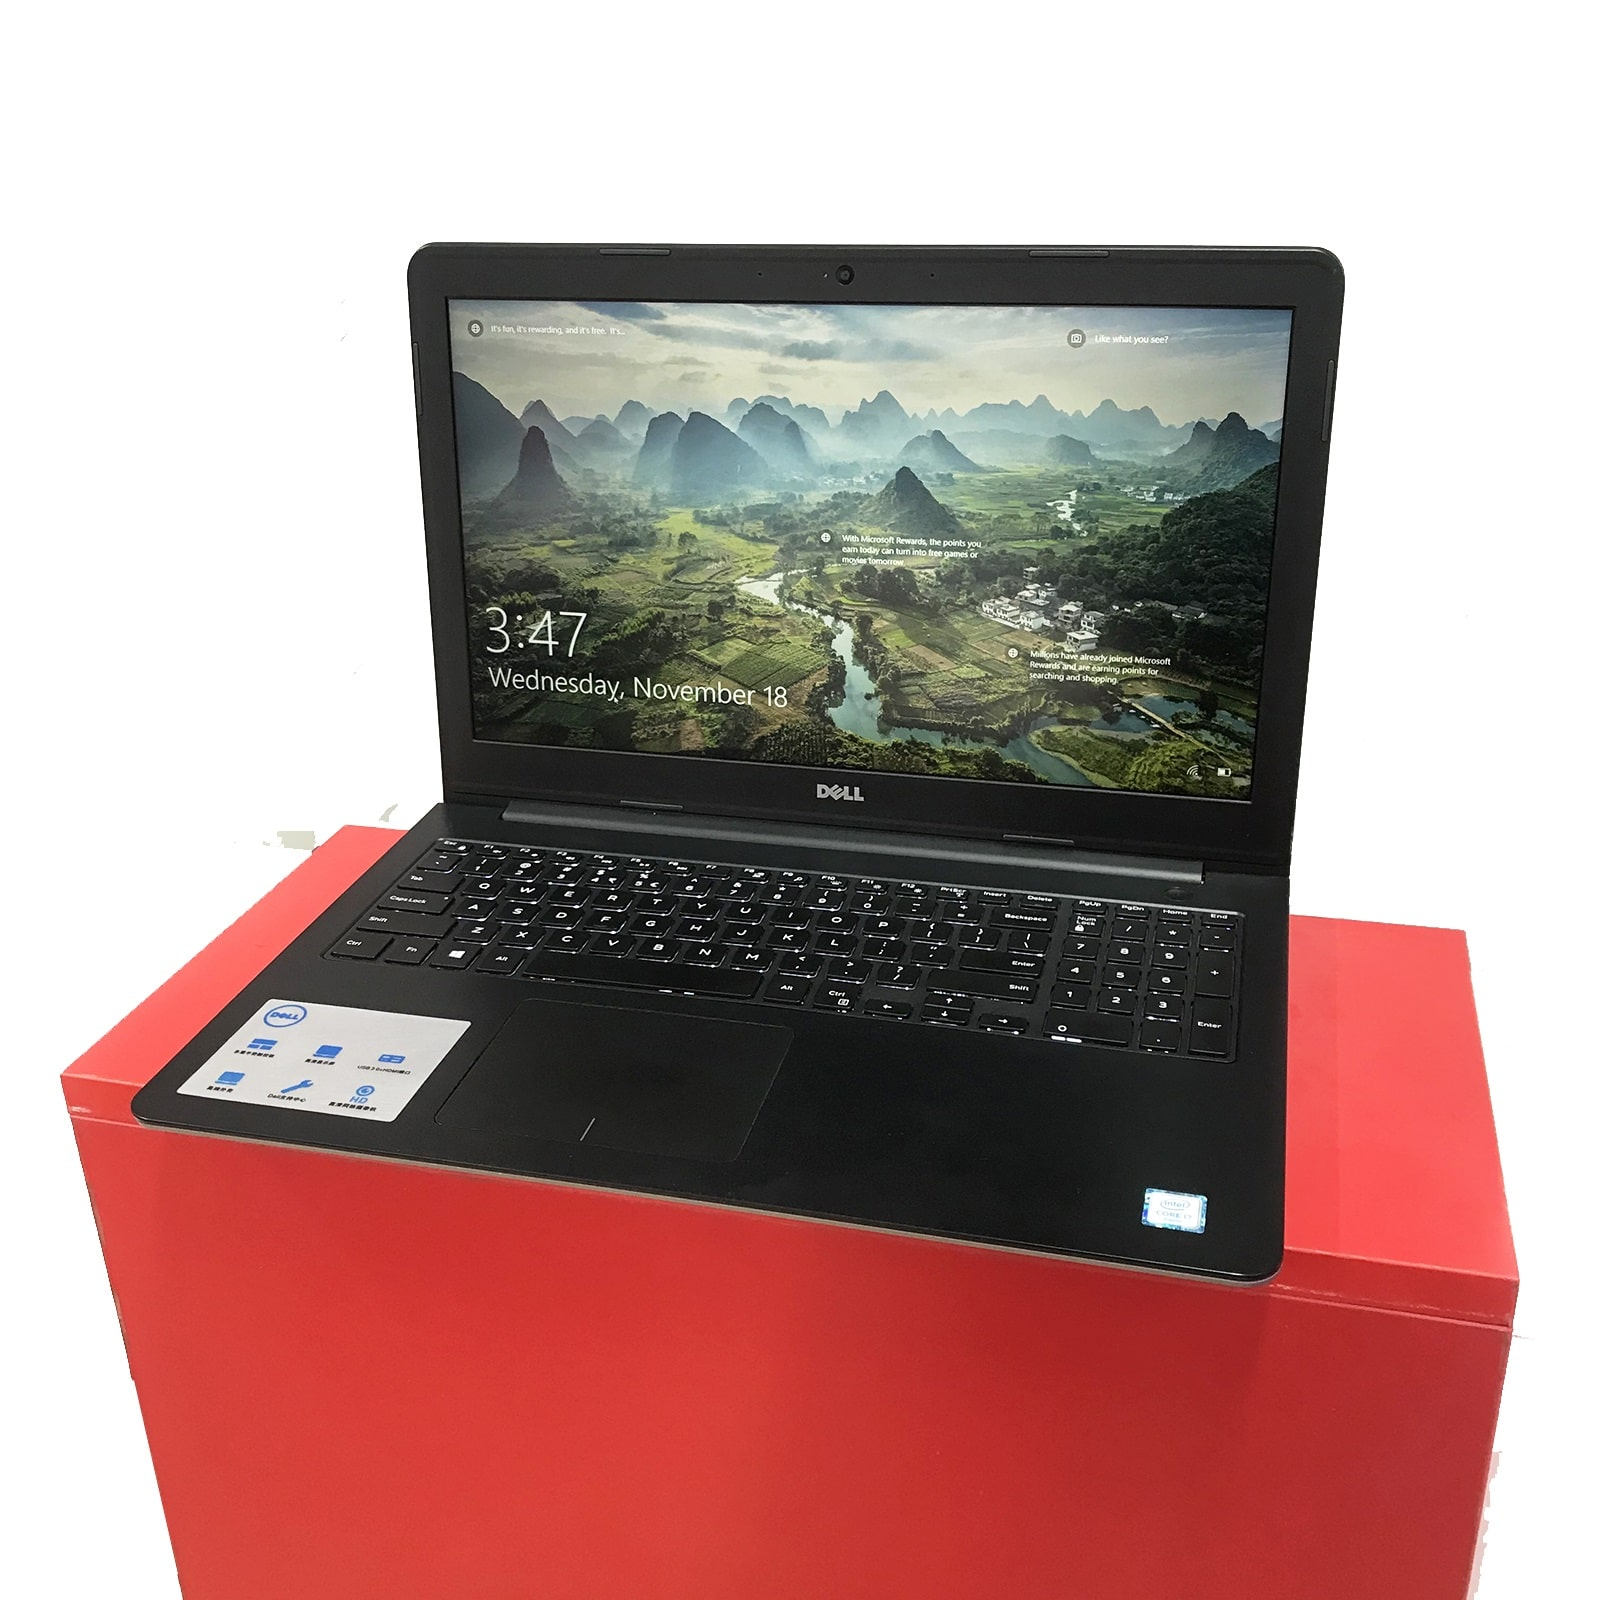 Dell Inspiron 5557 Core i7 6500U, Ram 8GB, SSD 240GB, 15.6 Inch, NVIDIA GeForce 930M